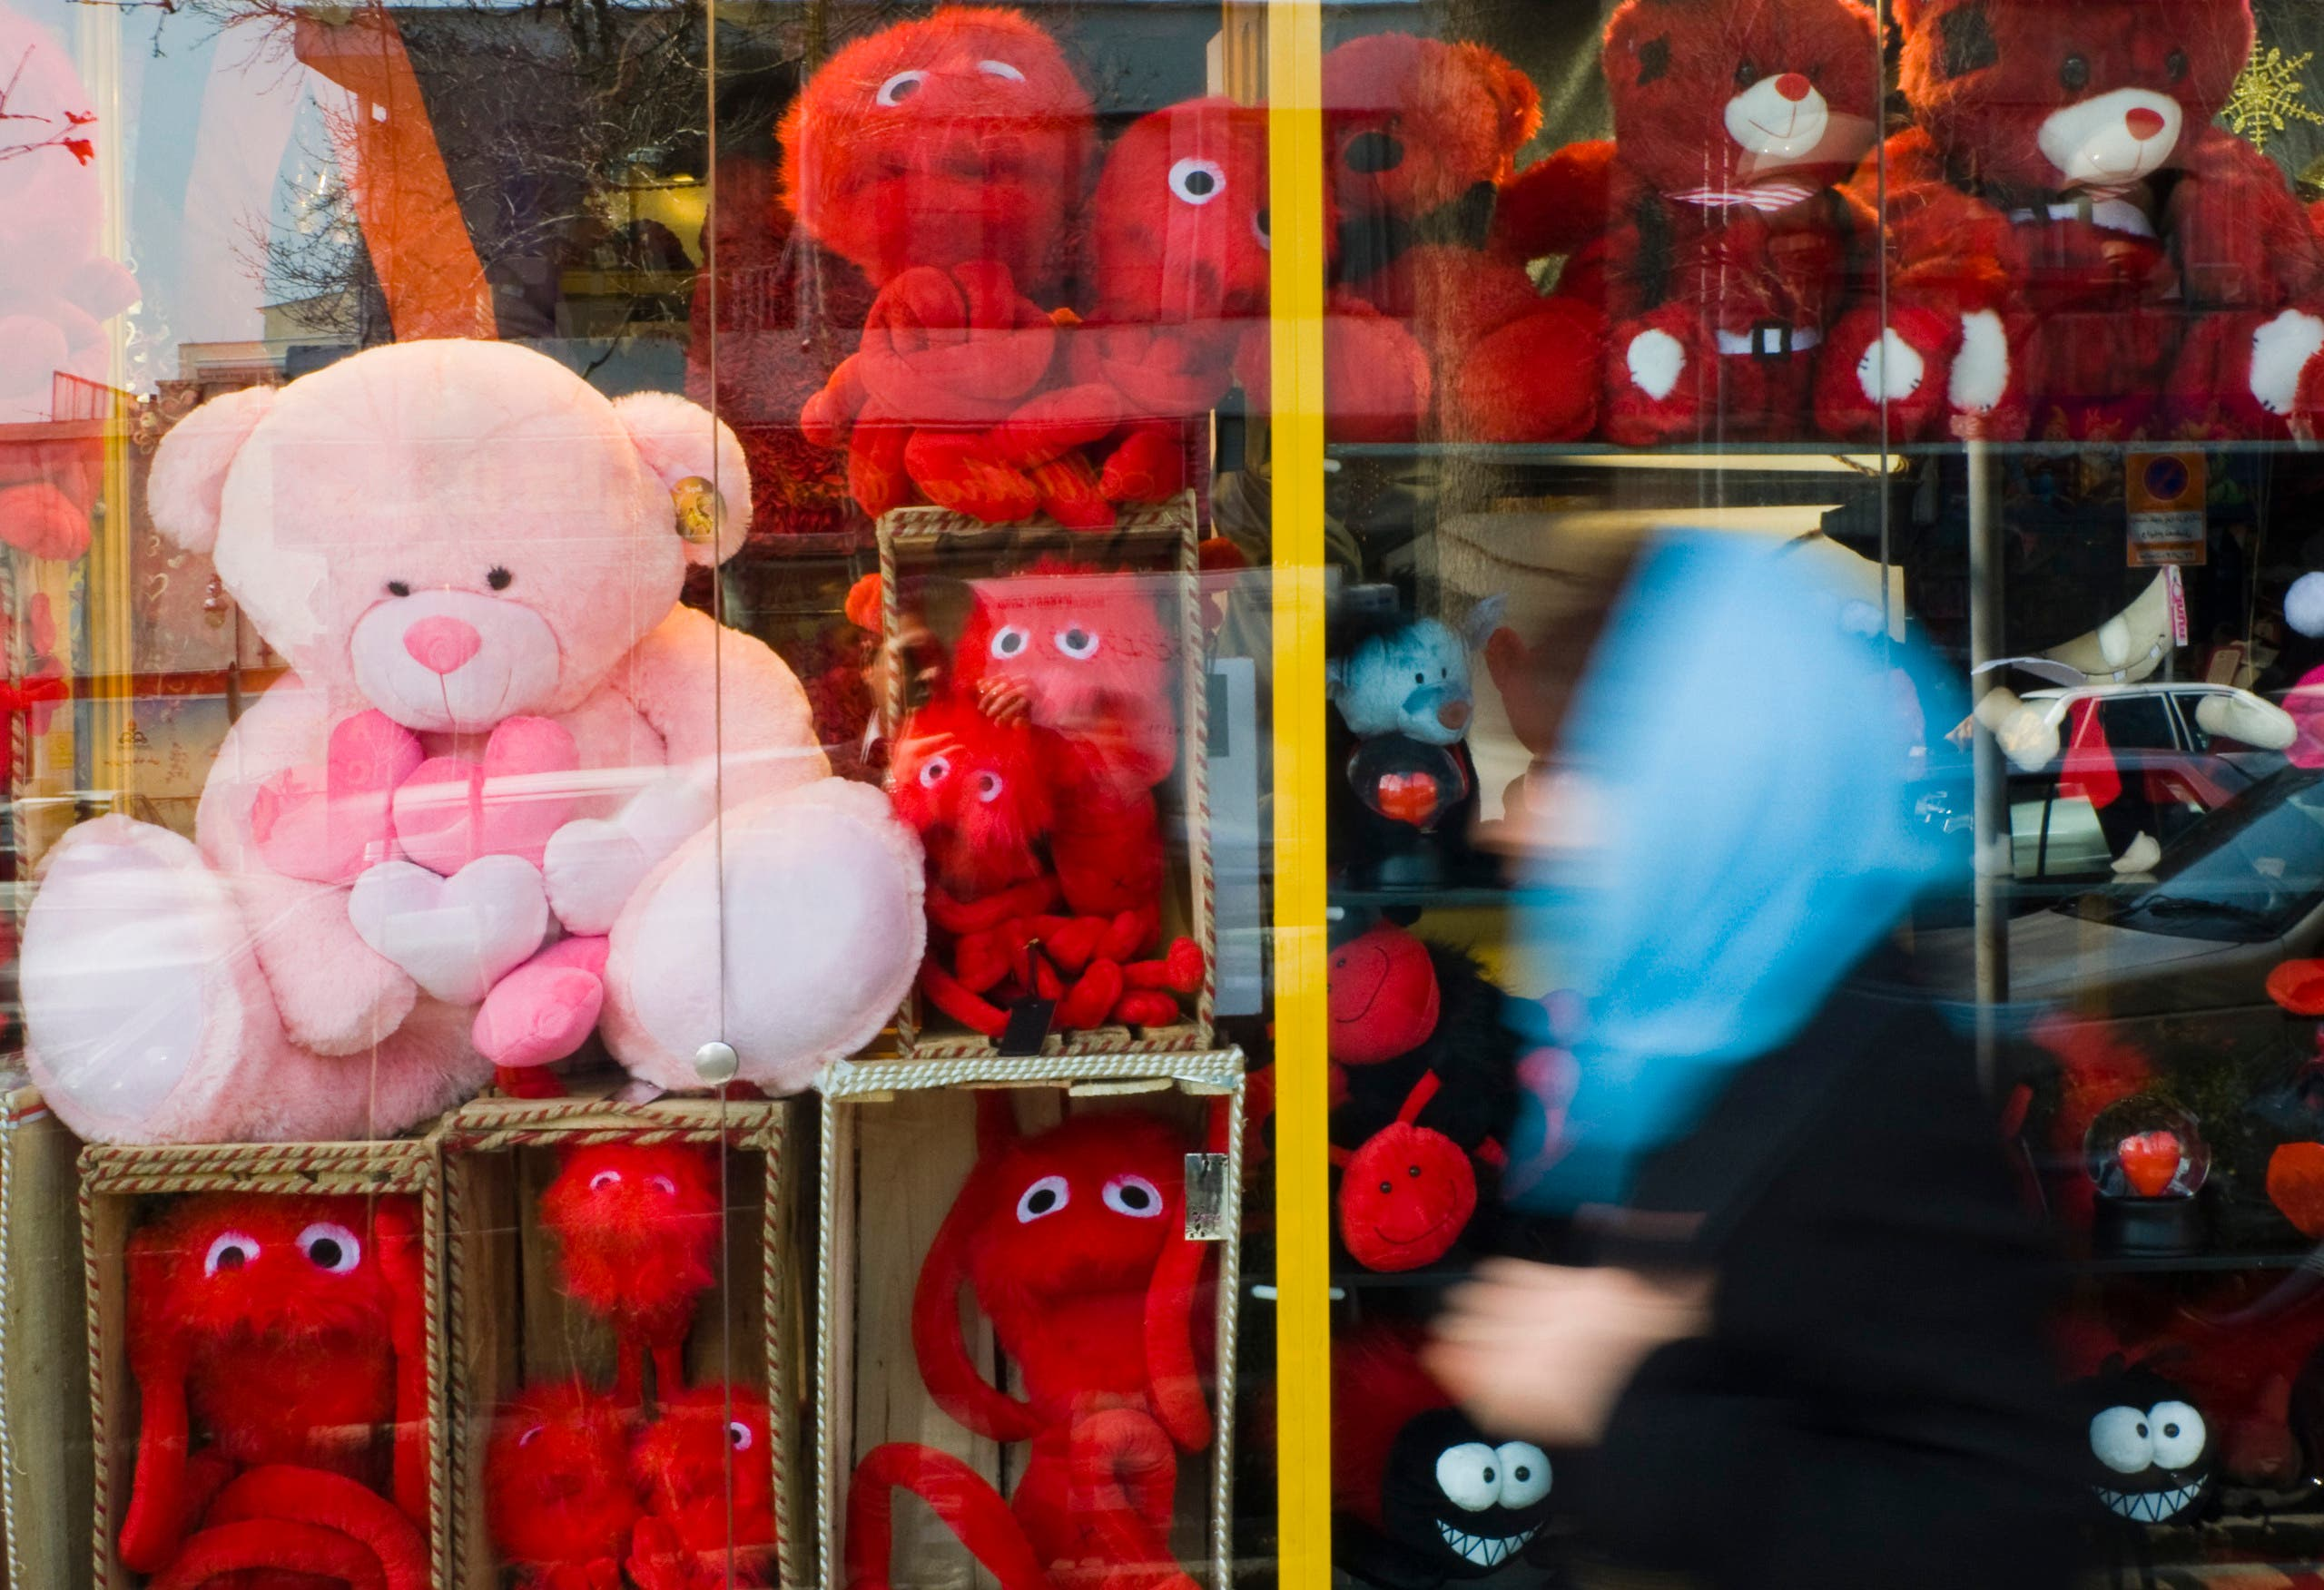 An Iranian woman walks past a shop window while Valentine's Day shopping in Tehran - February 14, 2010. (Reuters)